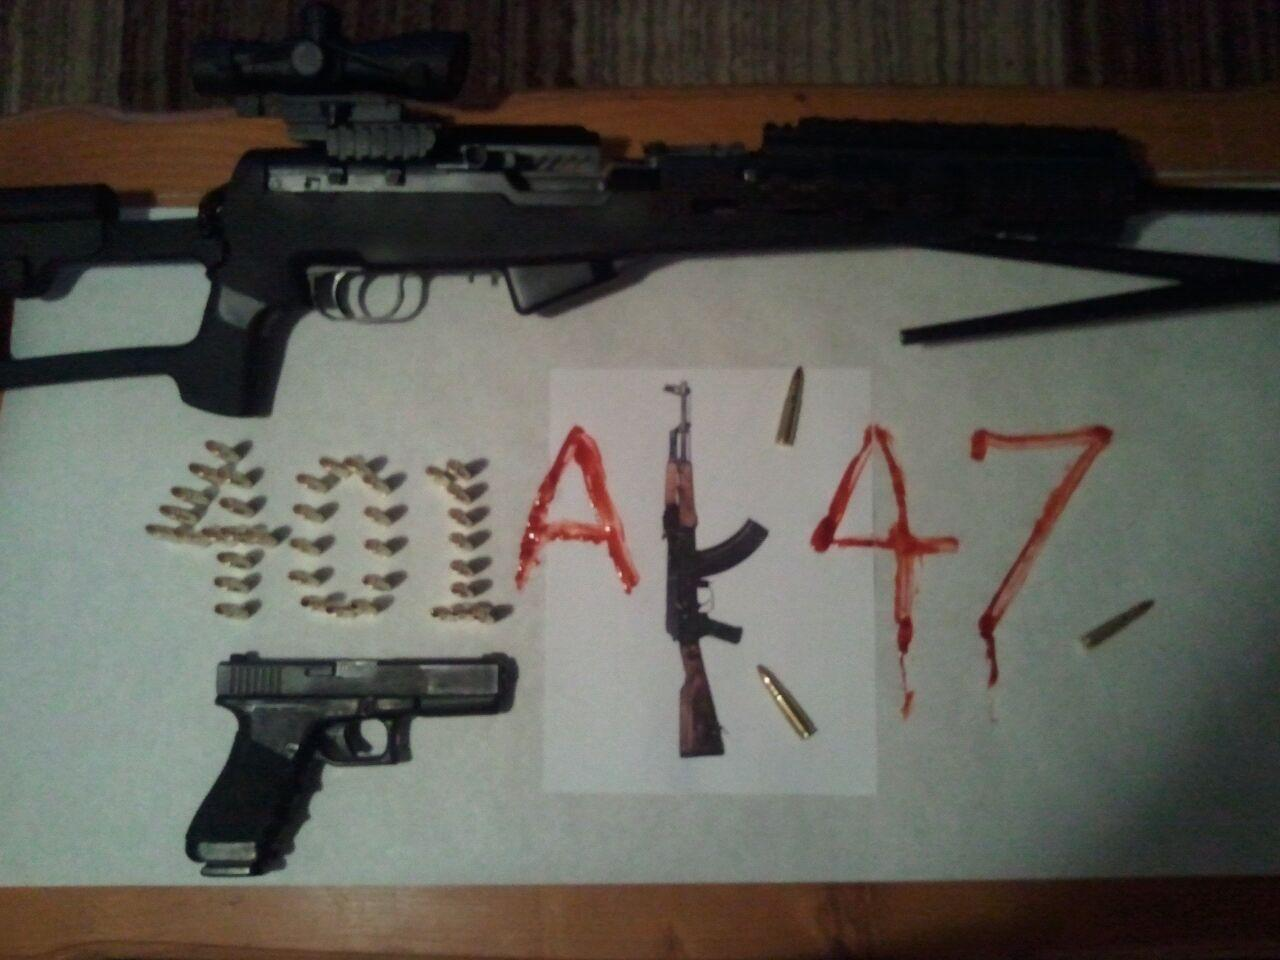 Zombie killing guns making 401ak47 logo in ammo and blood